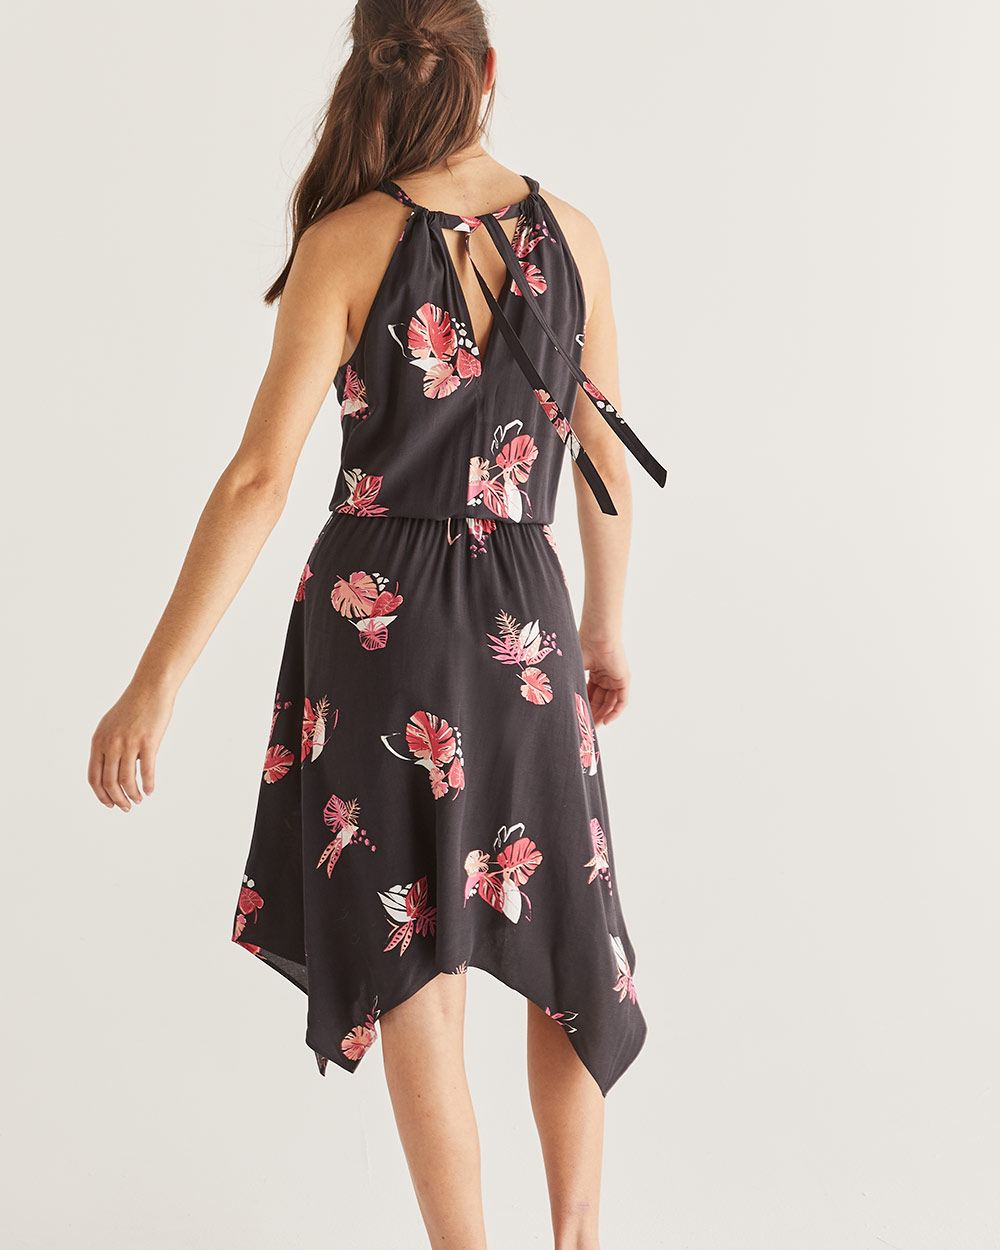 Printed Halter Dress with Elastic Waist